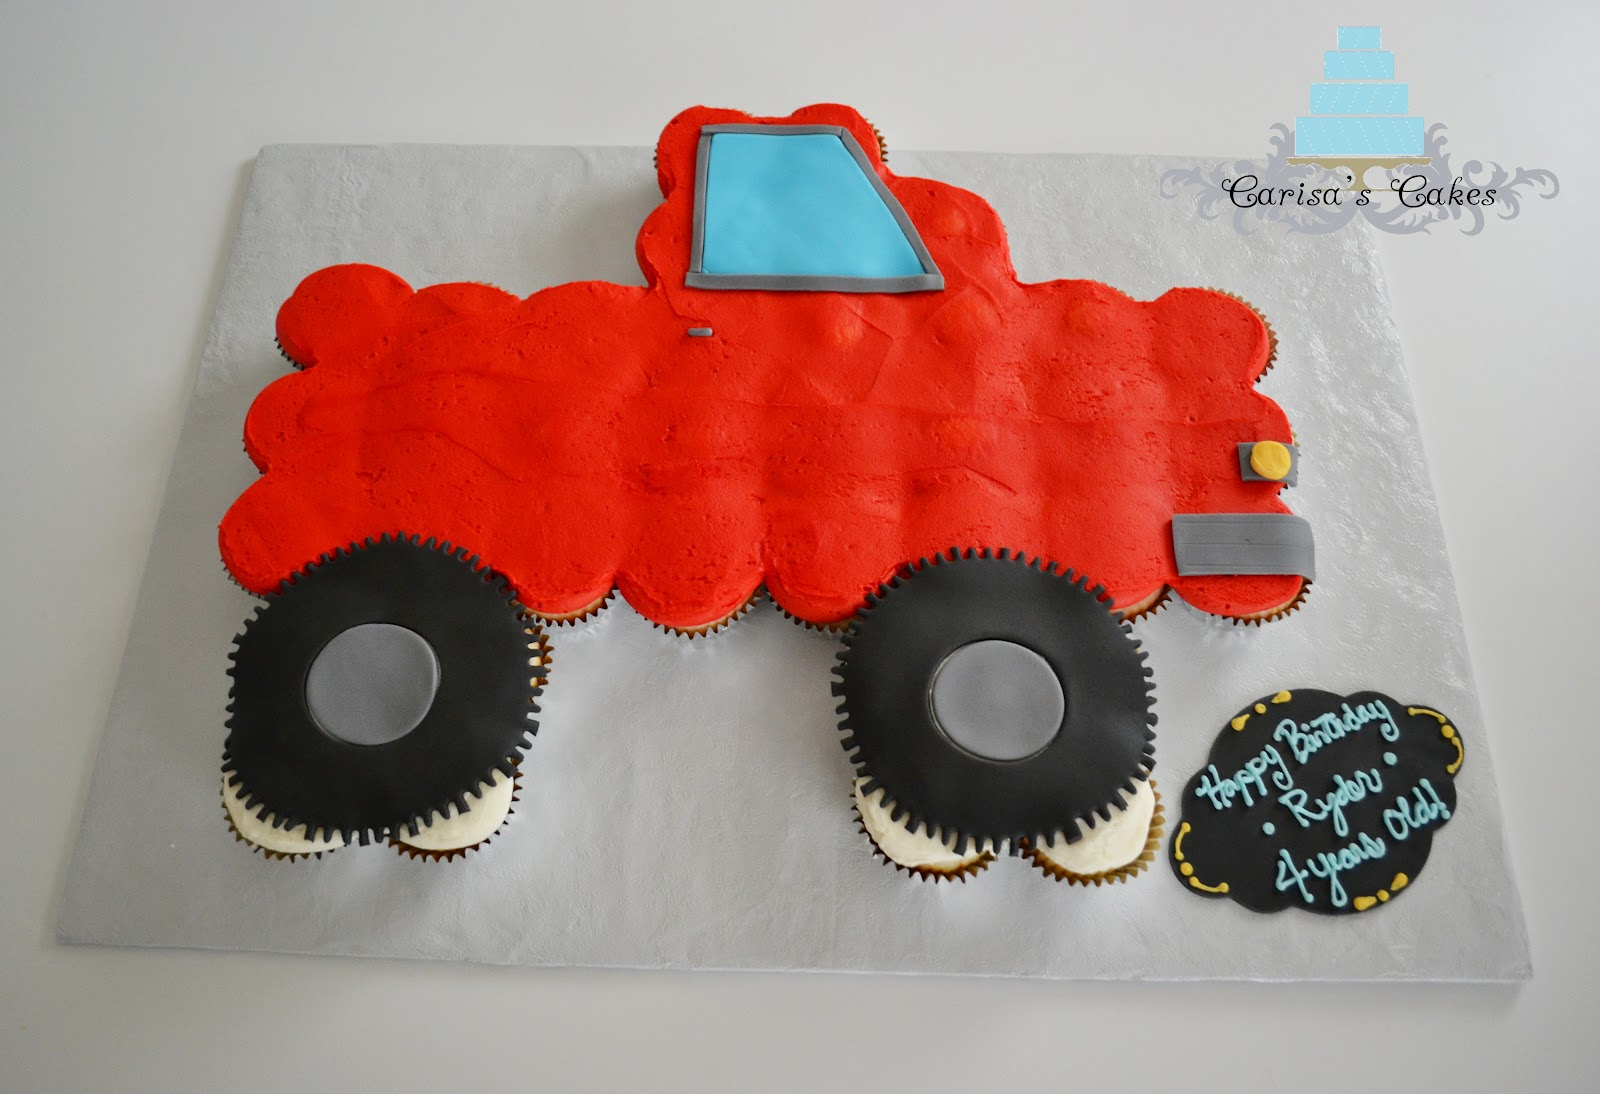 A Car Shaped Cake Made With Cupcakes